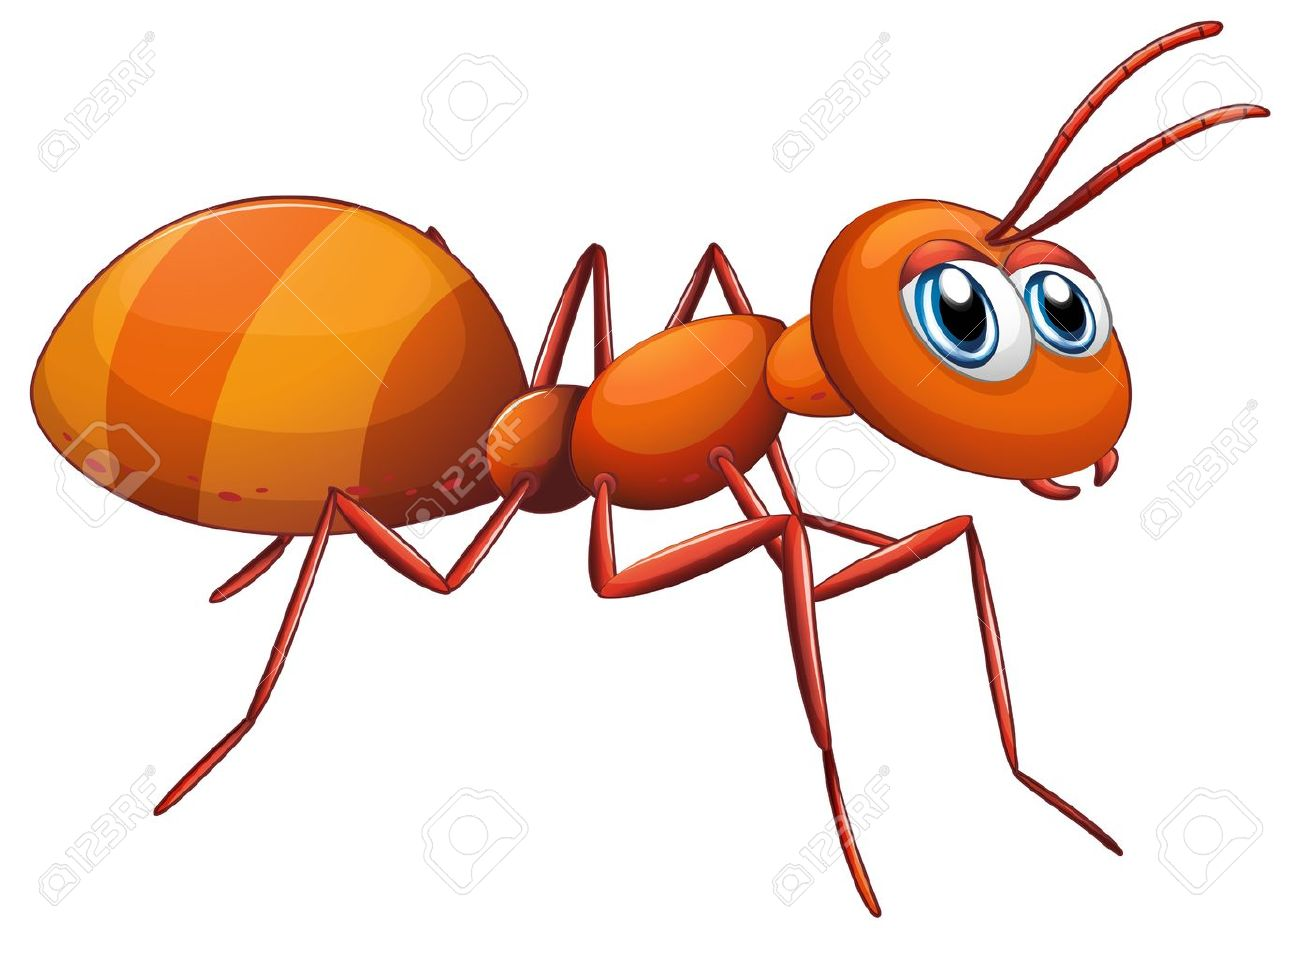 1 557 ants clipart stock illustrations cliparts and royalty free rh 123rf com clip art picnic ants clip art cartoon ants